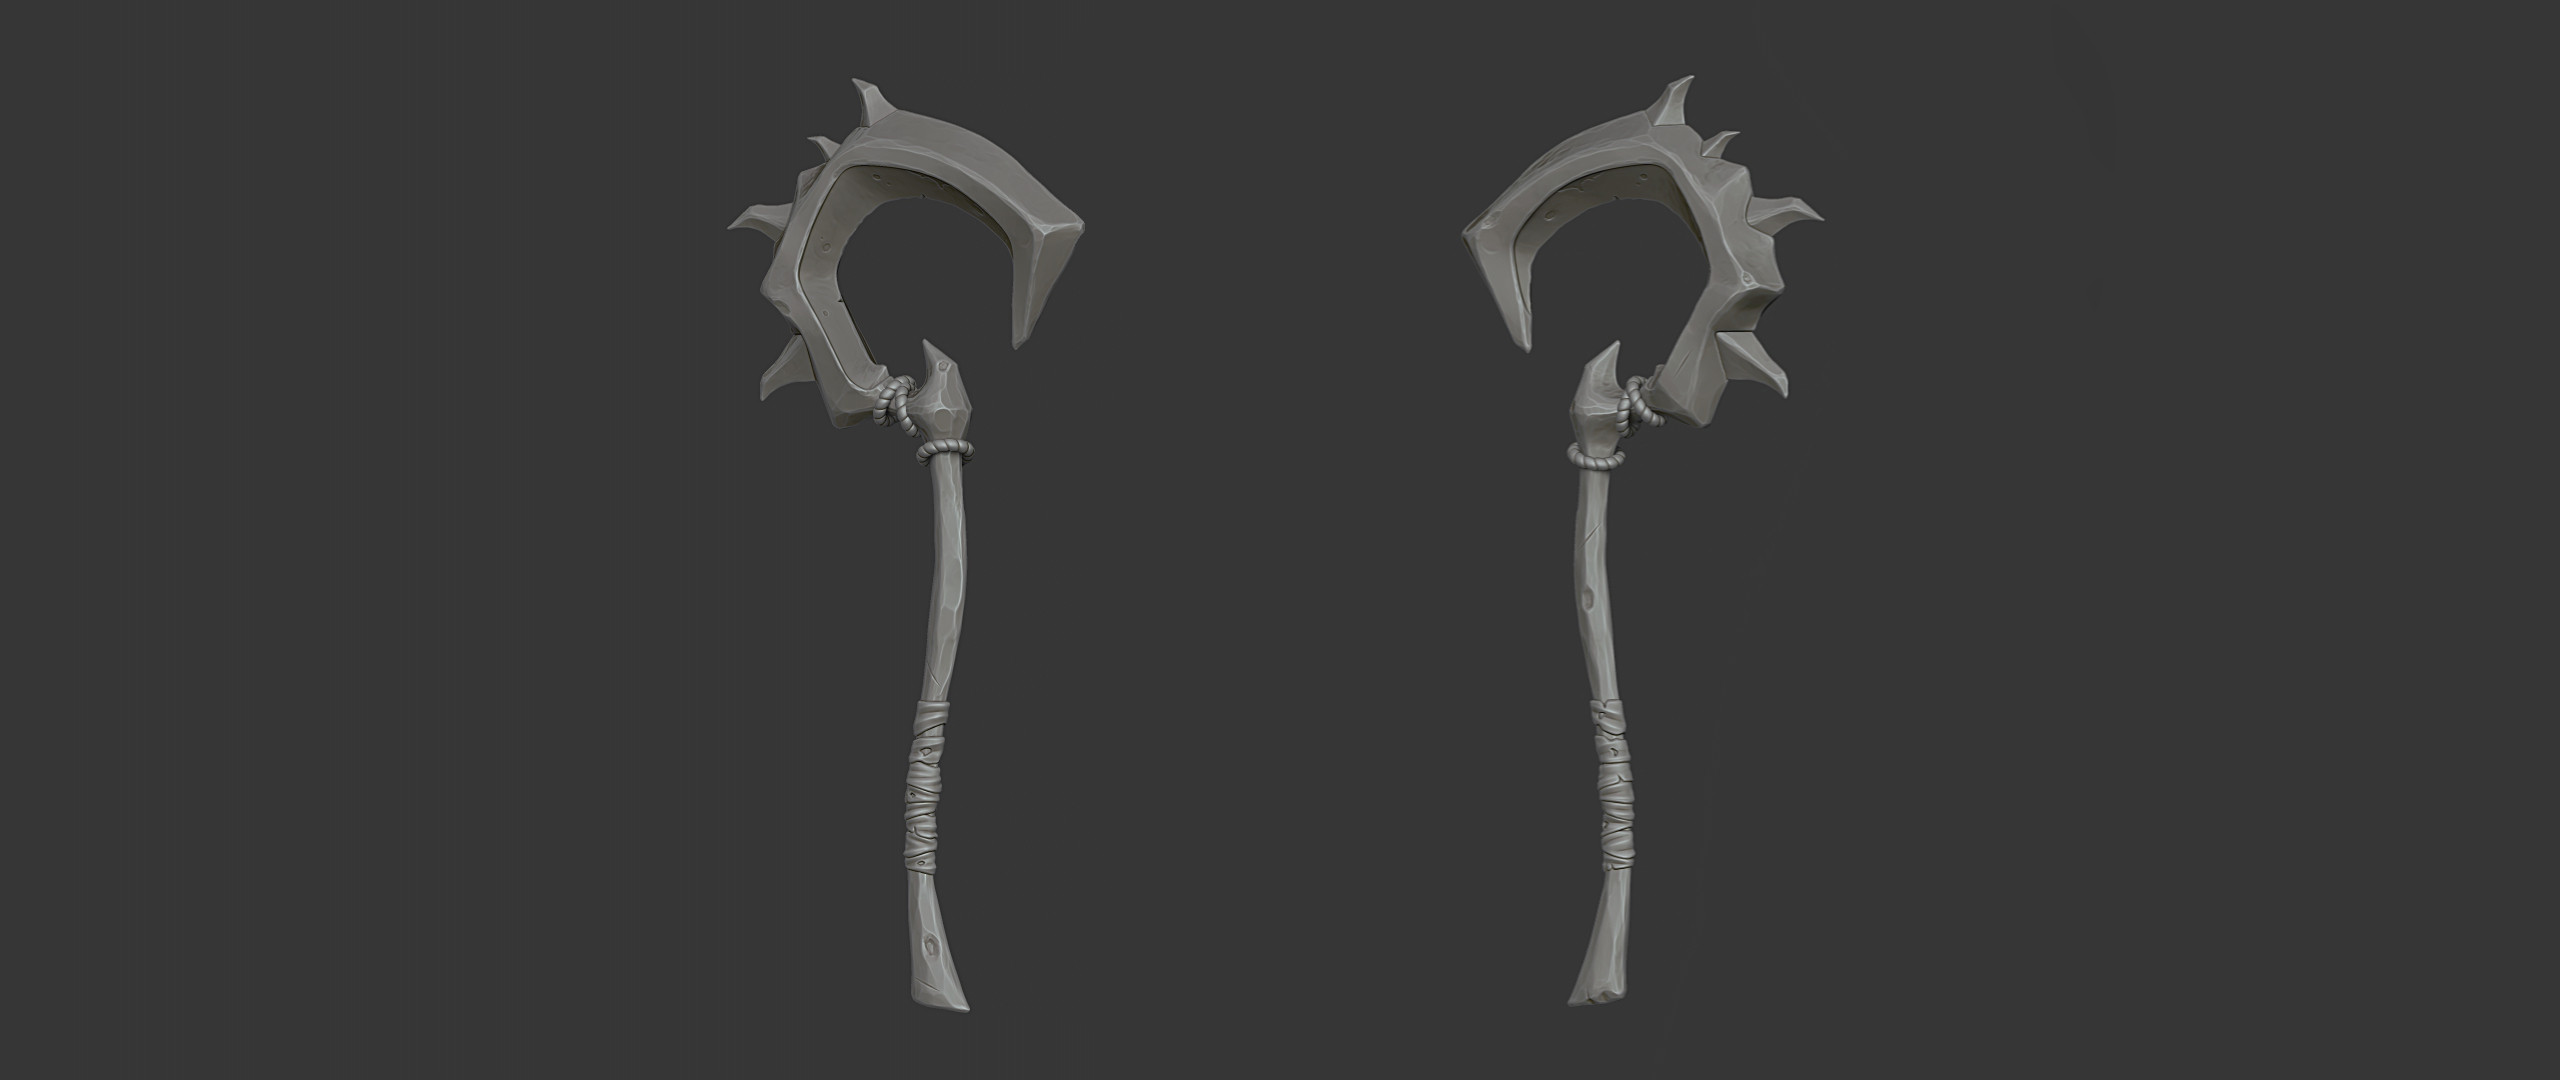 Character Weapon (Zbrush Render)